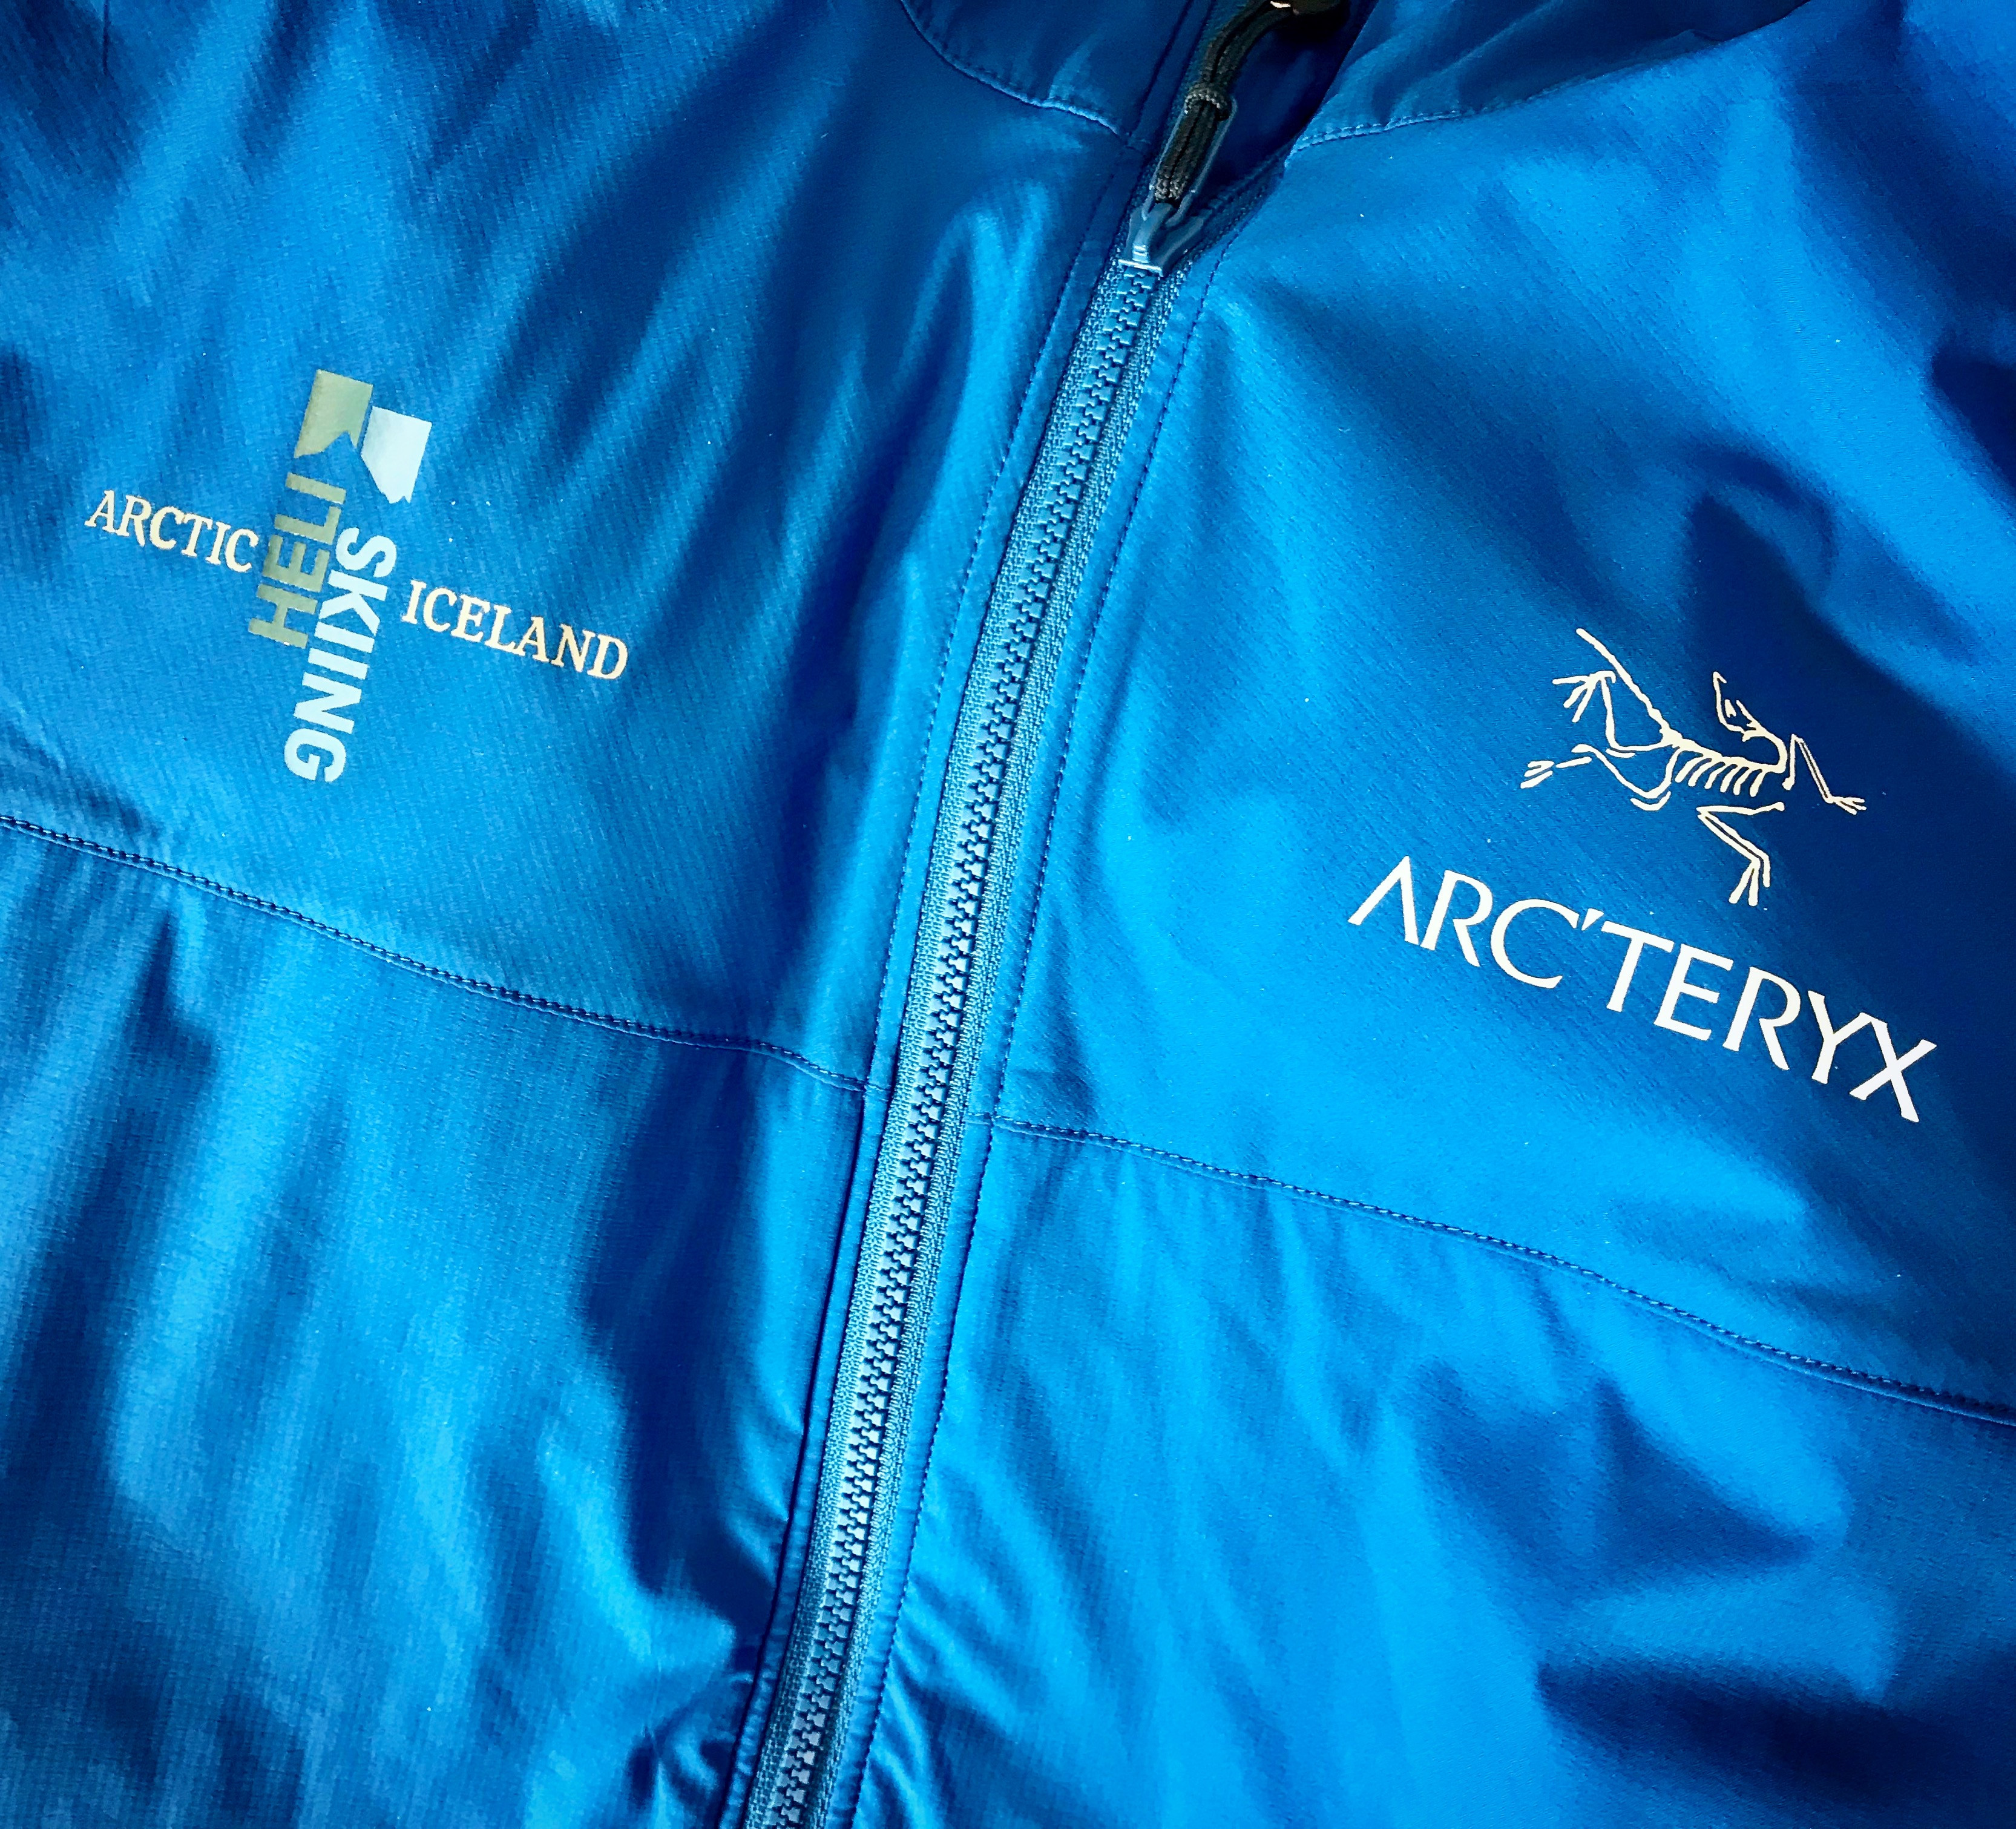 biggest discount incredible prices cost charm Arc'teryx Partnership | Arctic Heli Skiing